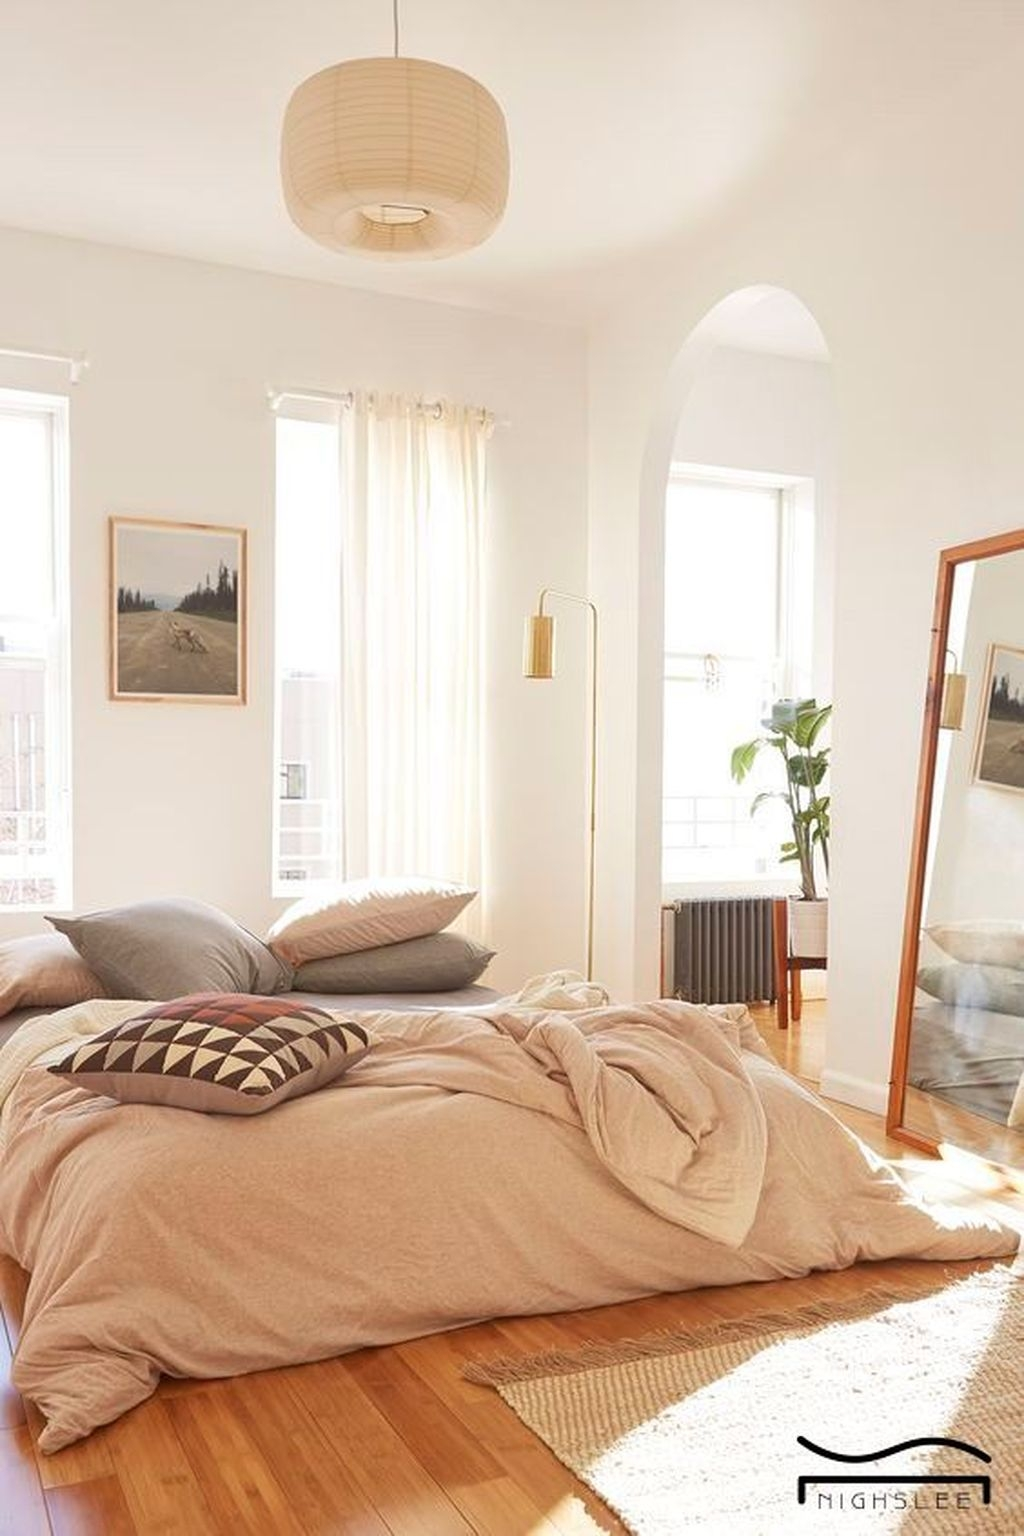 Minimalist Scandinavian Bedroom Decor Ideas 17